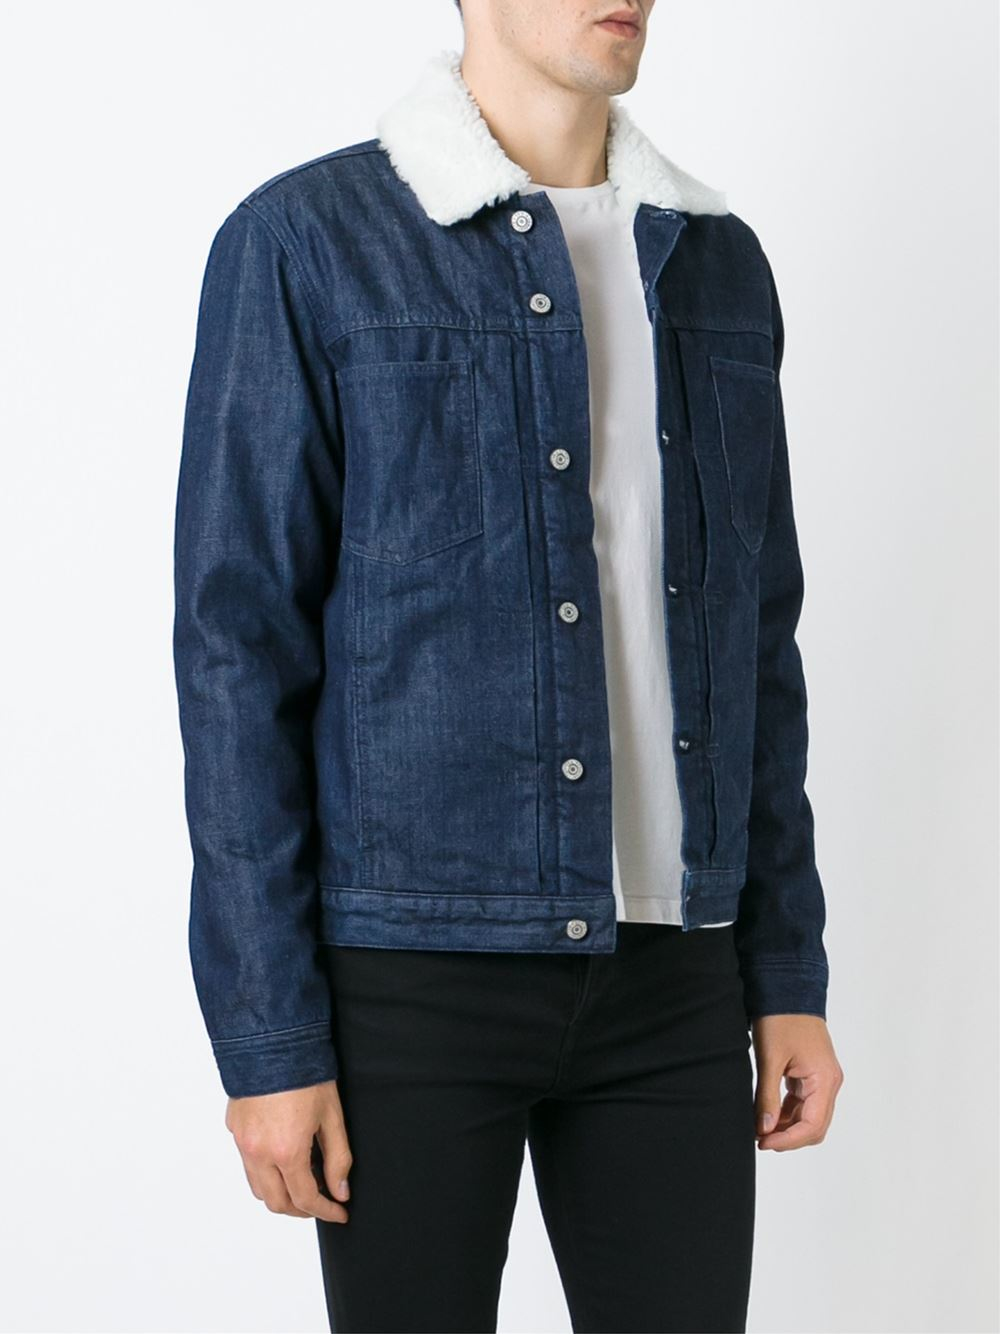 Lyst - Edwin u0026#39;panheadu0026#39; Denim Jacket in Blue for Men